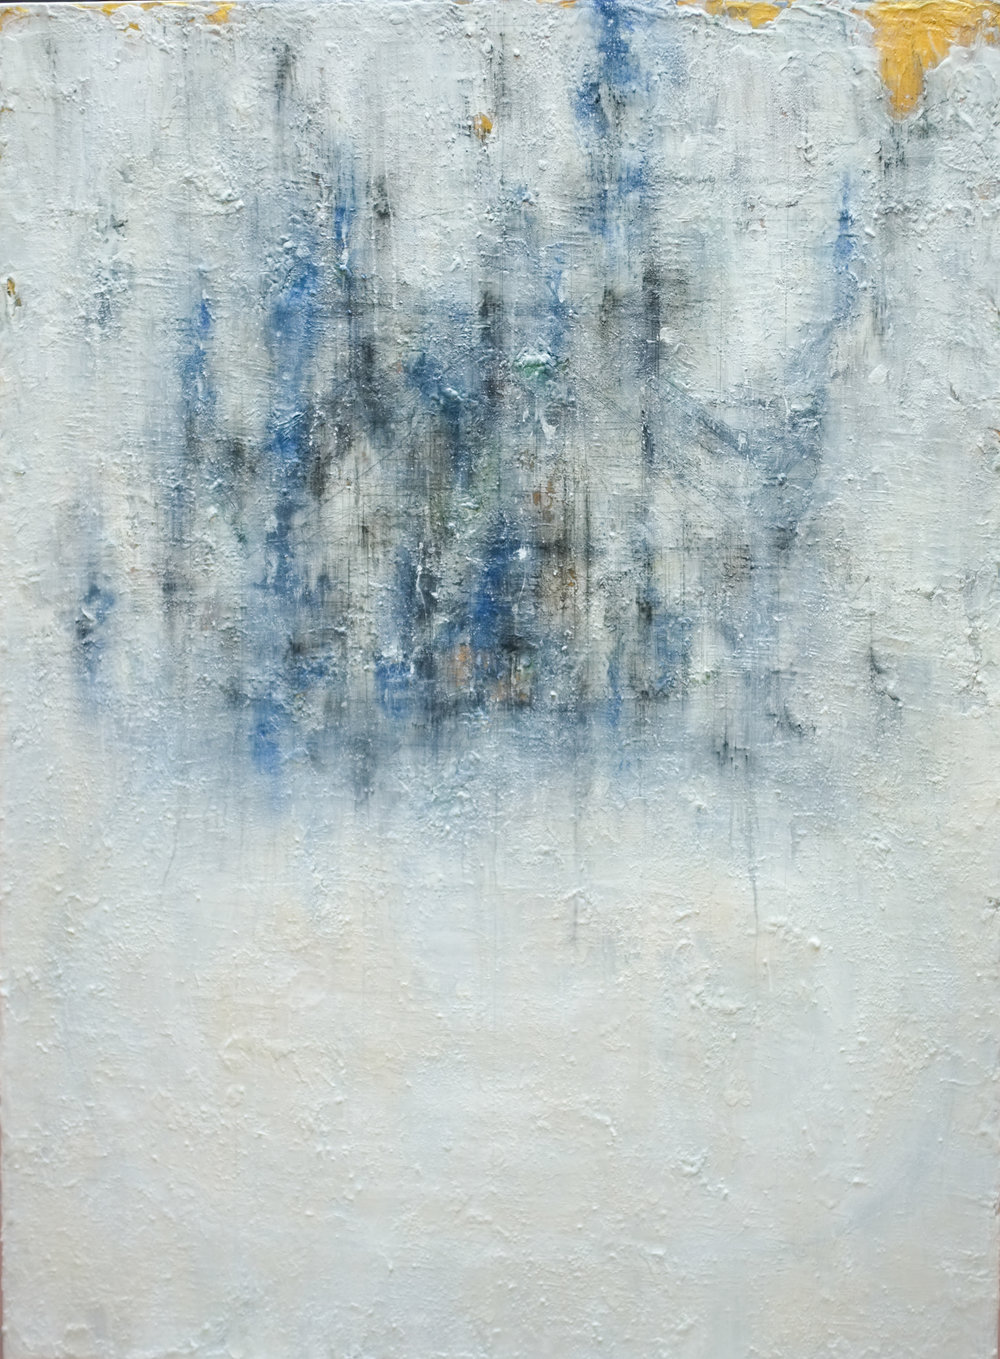 HA Manh Thang, Foggy Days At The Lake #3, 2017, Acrylic, Oil, Charcoal and pencil on Canvas, 150 x 110 cm